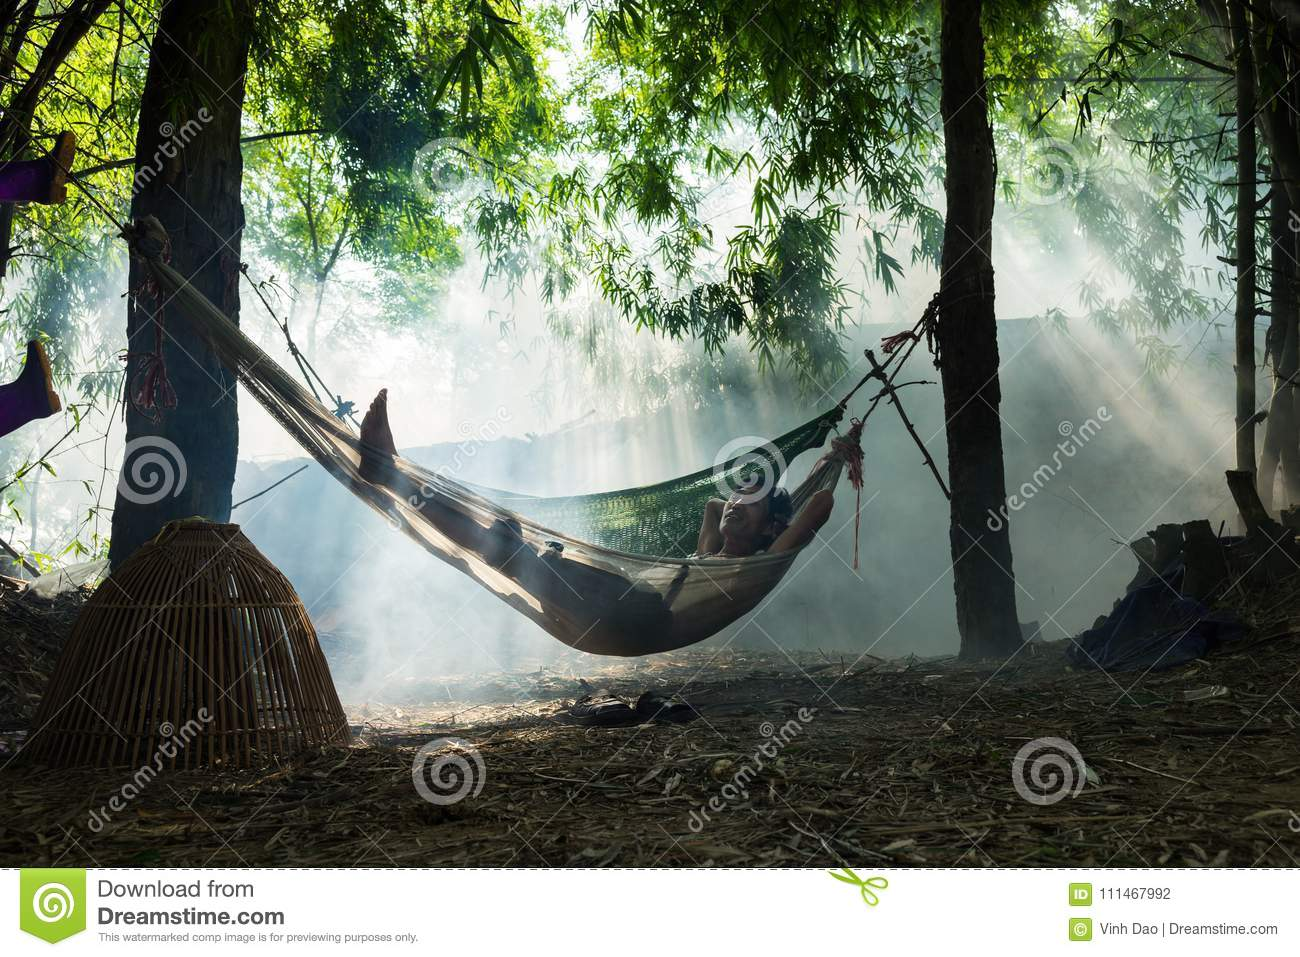 Bac Ninh, Vietnam - May 29, 2016: A man taking a break at noon on hammock in the shade of tree by Cau river